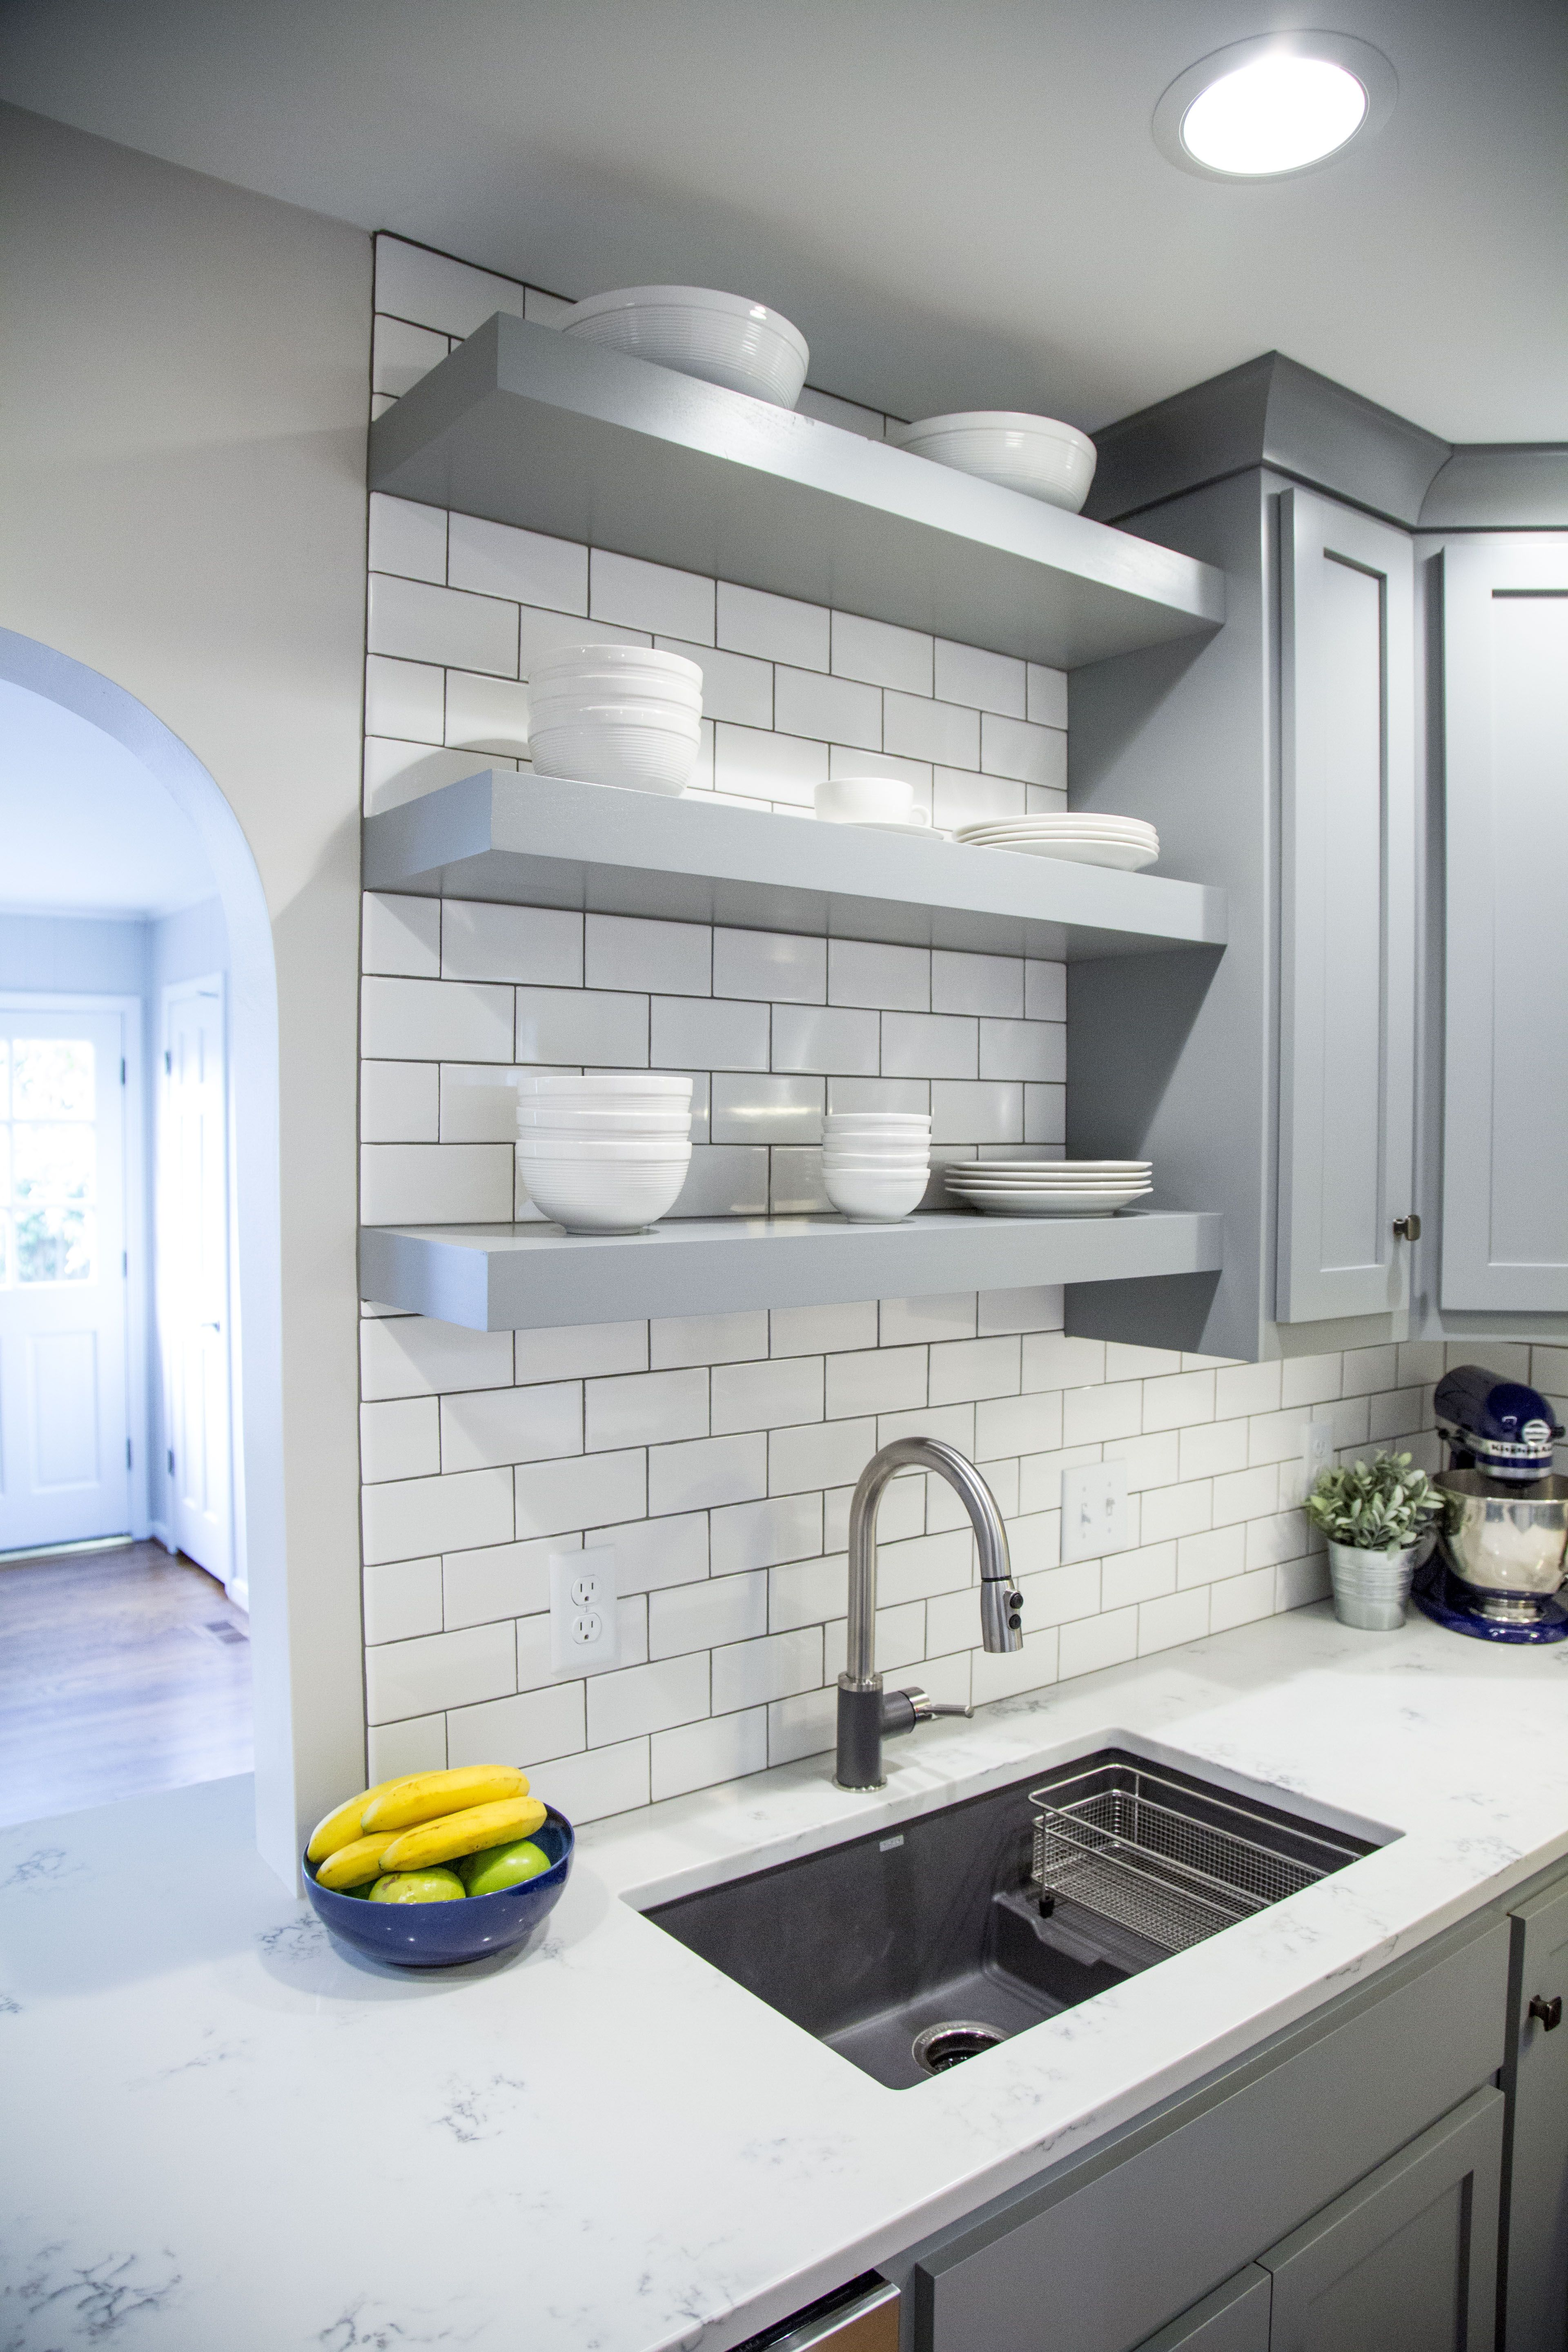 Brite white subway tile 3x6 classic french gray shaker cabinets brite white subway tile 3x6 classic french gray shaker cabinets msi carrara grigio quartz dailygadgetfo Image collections